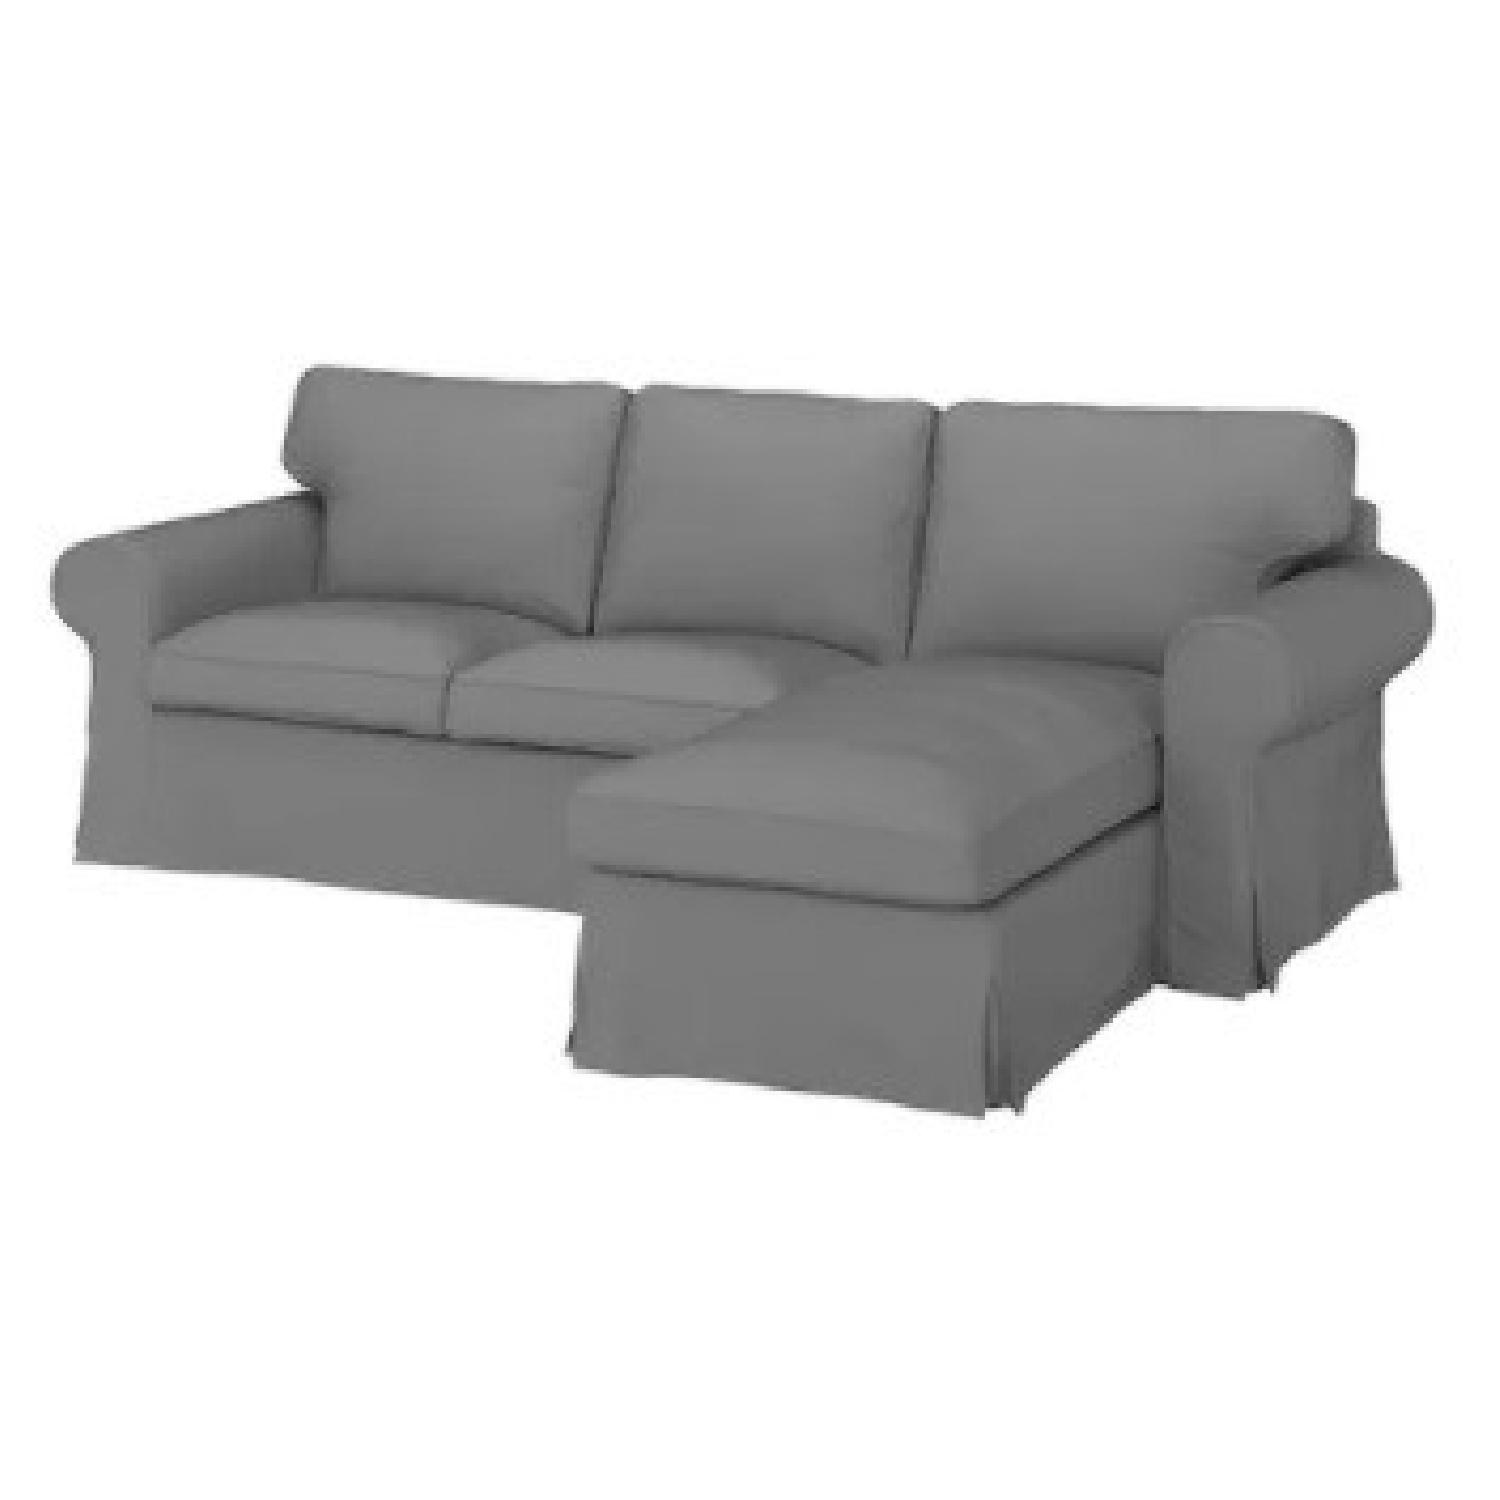 IKEA Grey 3-Seat Sofa with Chaise - image-5